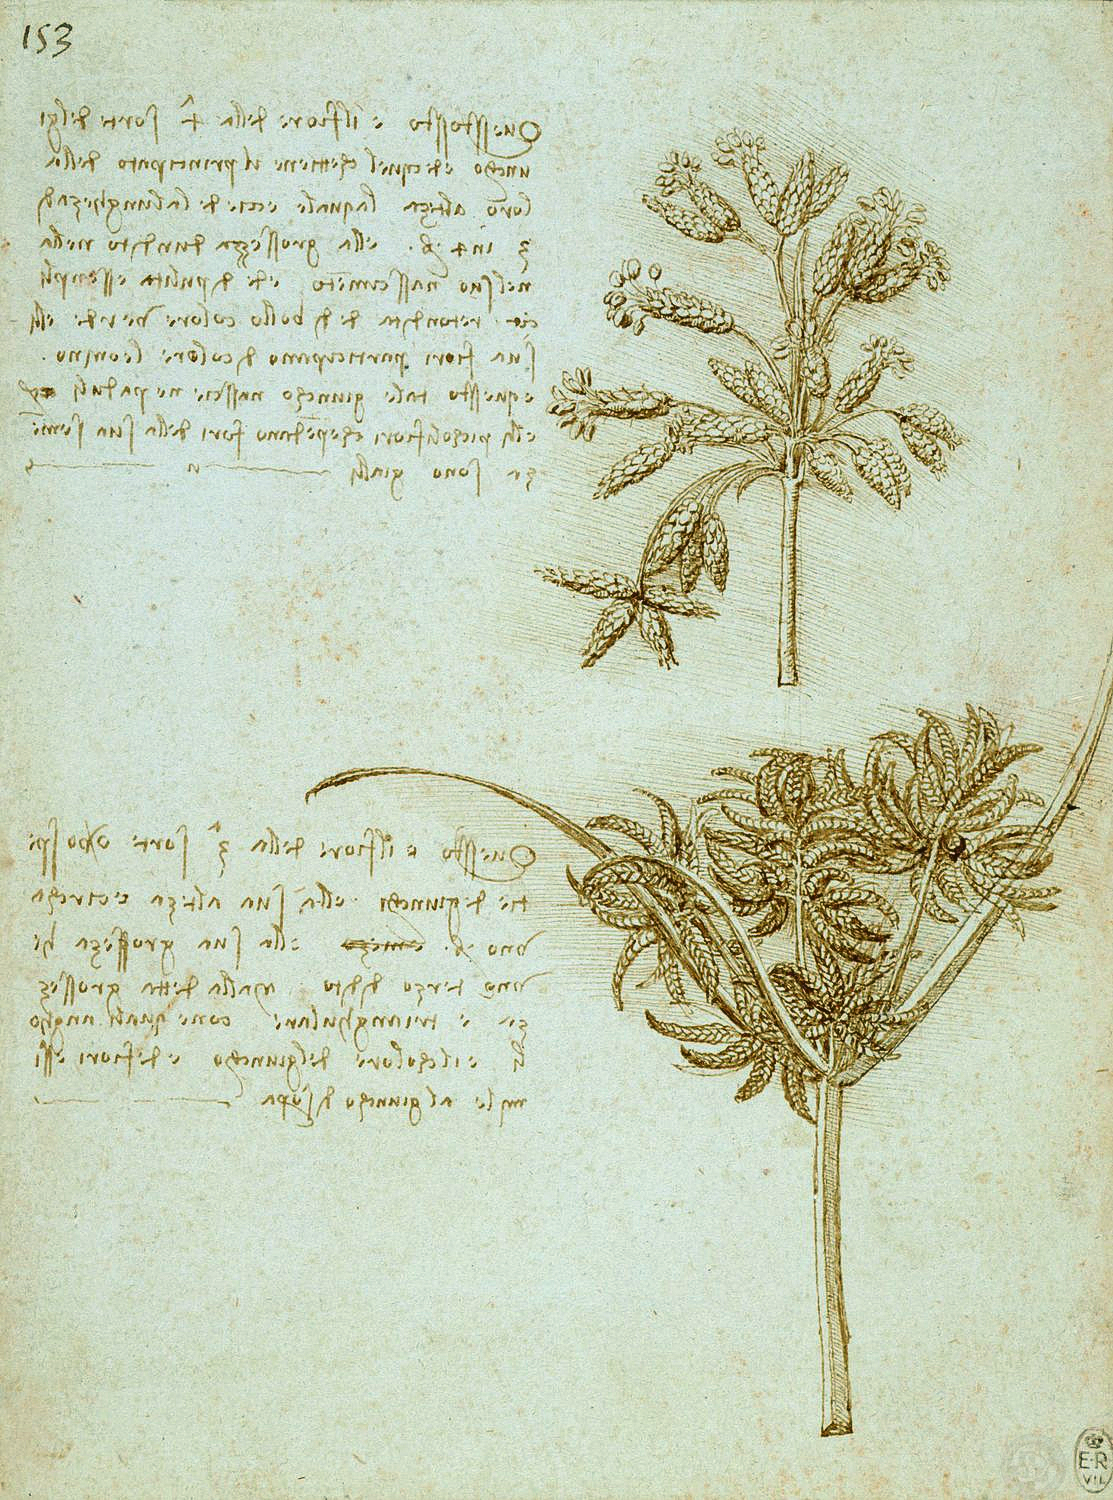 The seed-heads of two rushes (Scirpus lacustris and Cyperus sp.), with notes